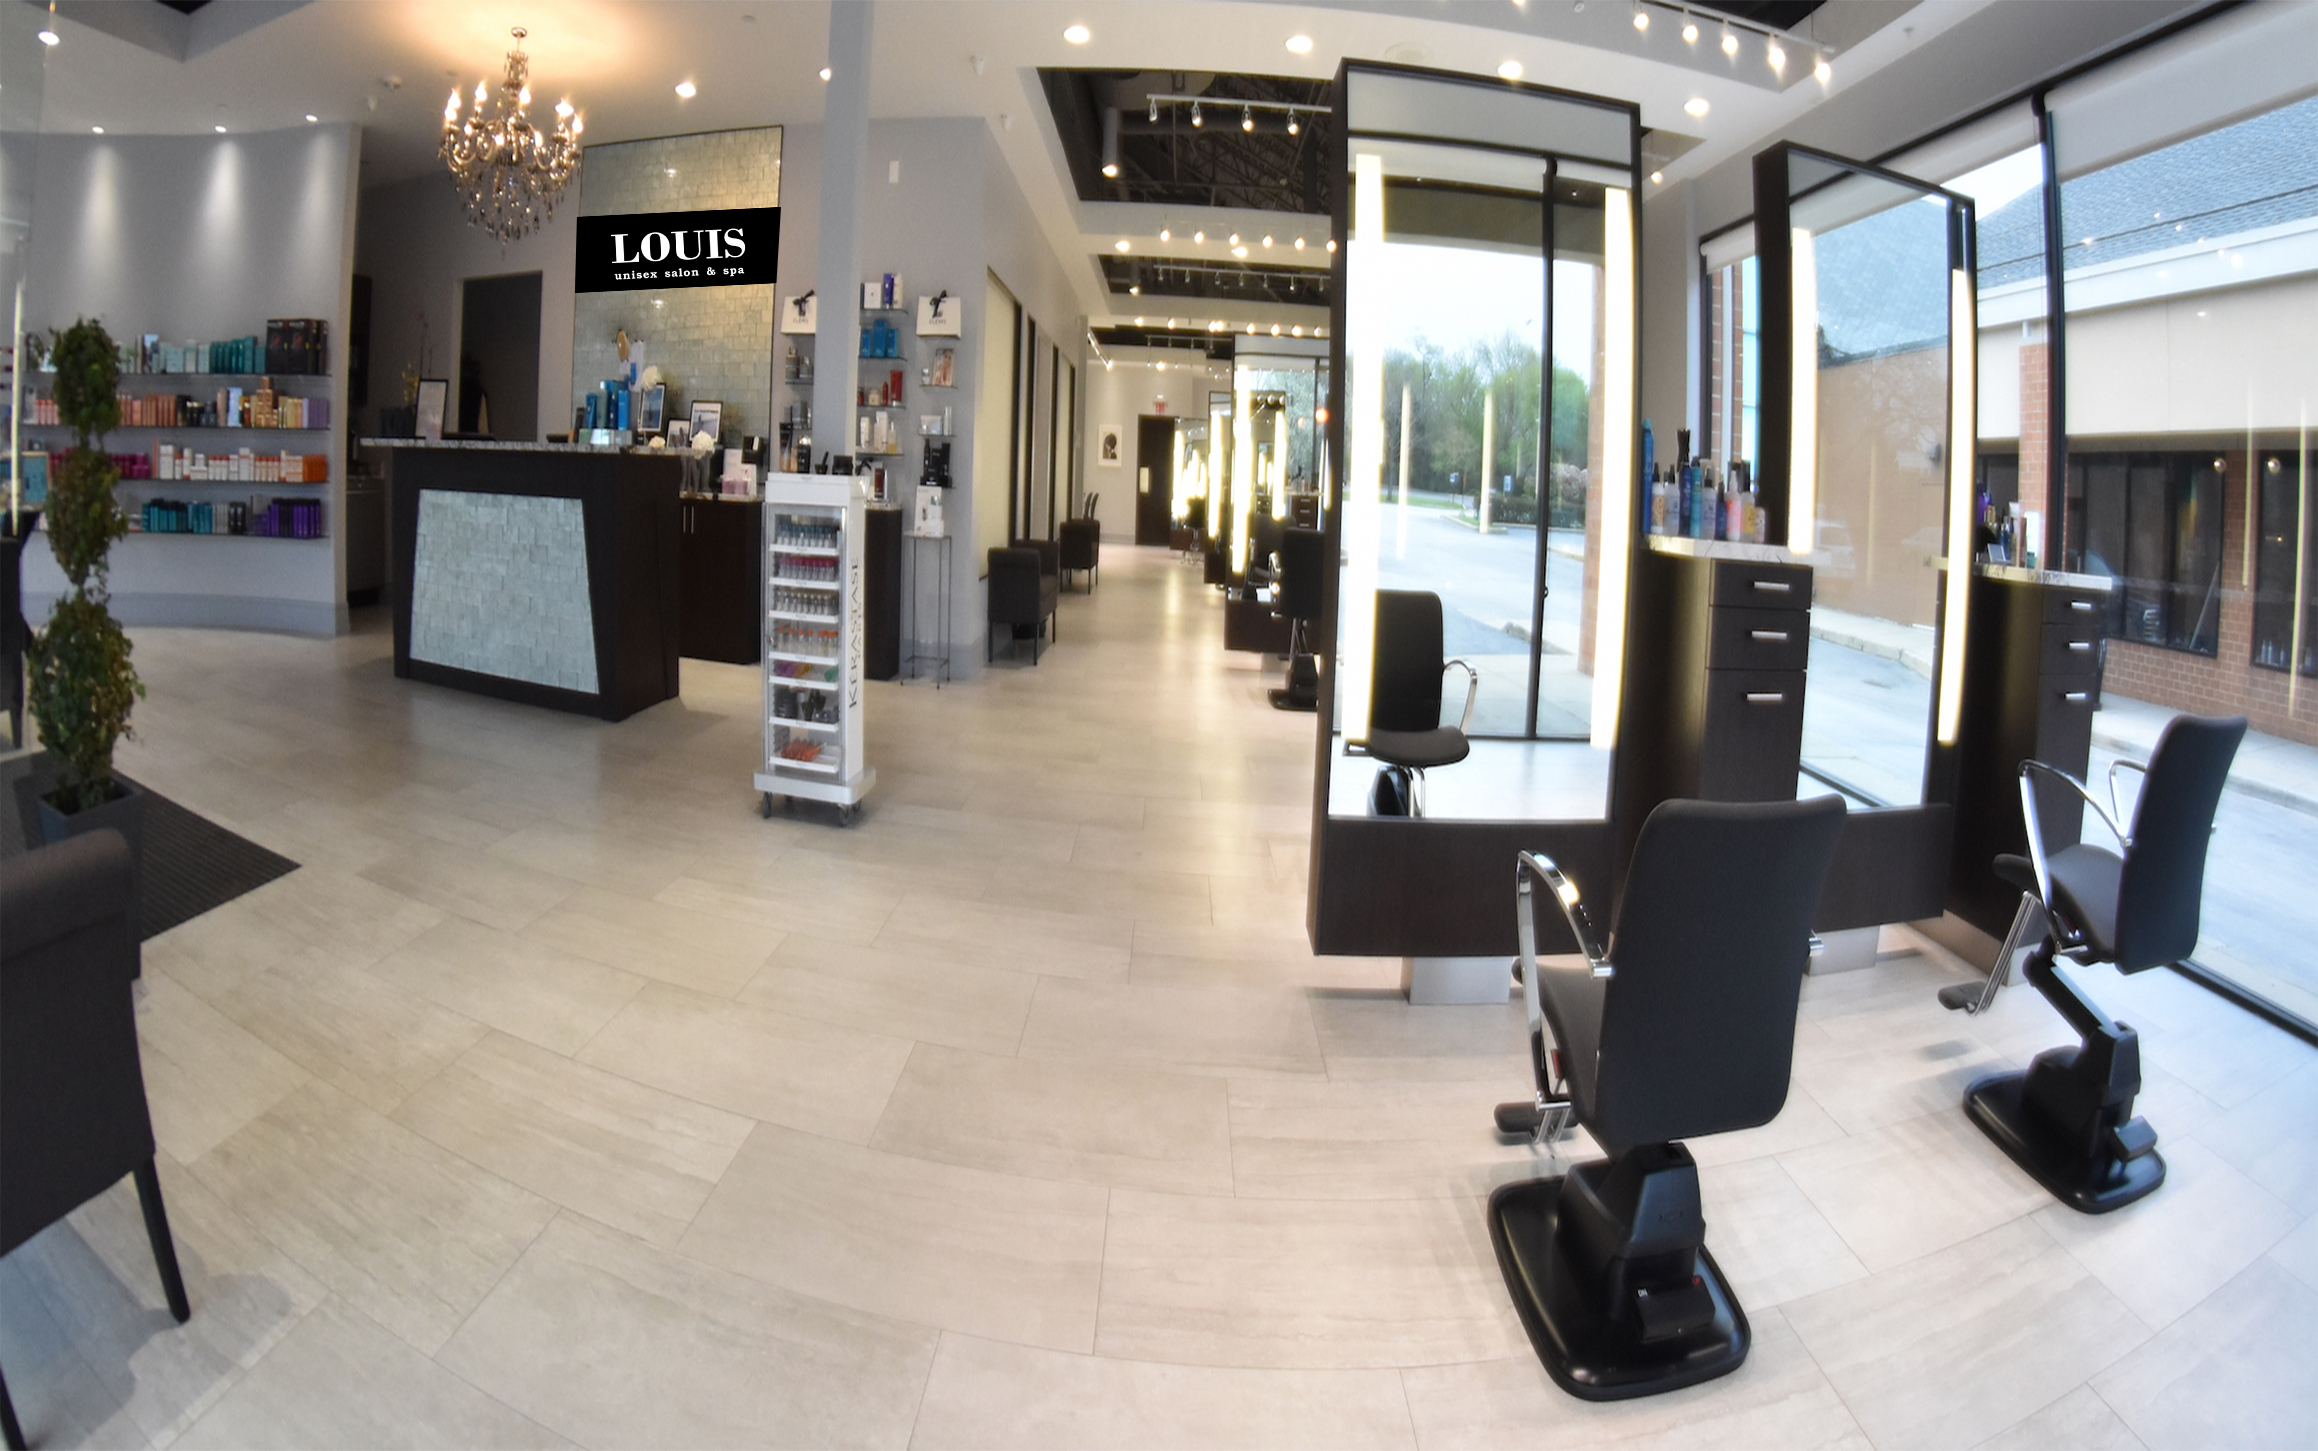 louis+unisex+salon+dubai 25